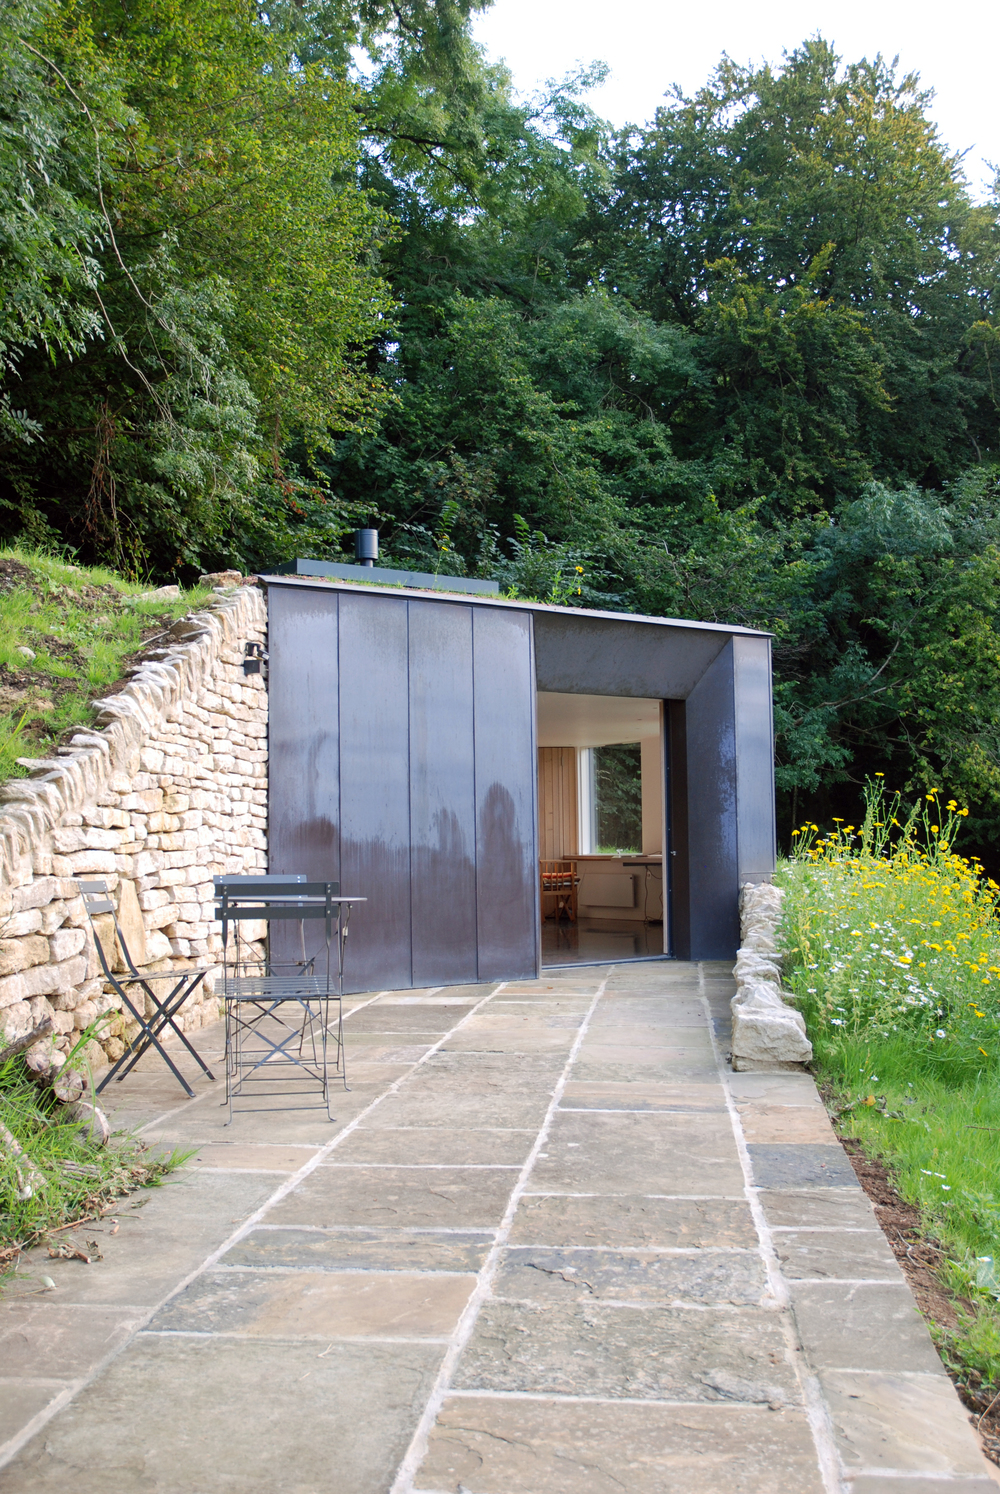 Myrtle cottage garden studio riba national award 2015 for Garden design studio